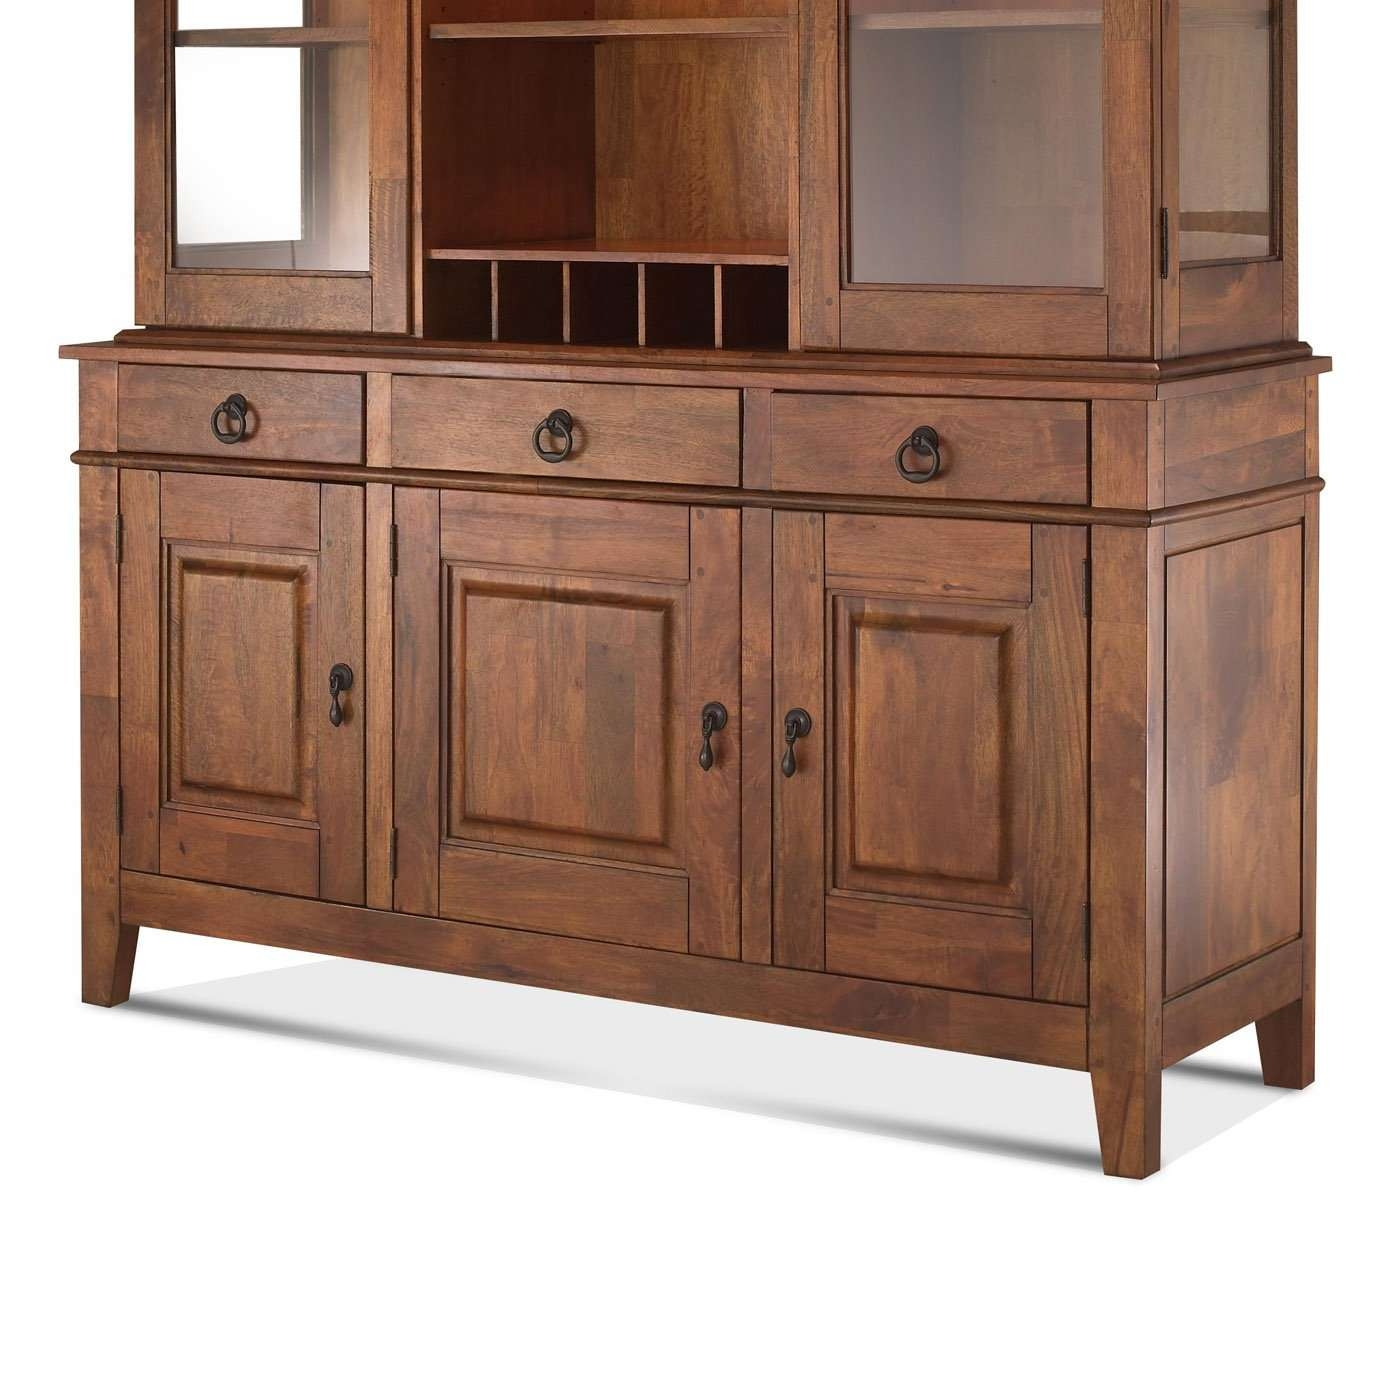 Best Of Sideboards And Buffets – Bjdgjy Pertaining To Wooden Sideboards And Buffets (View 8 of 20)